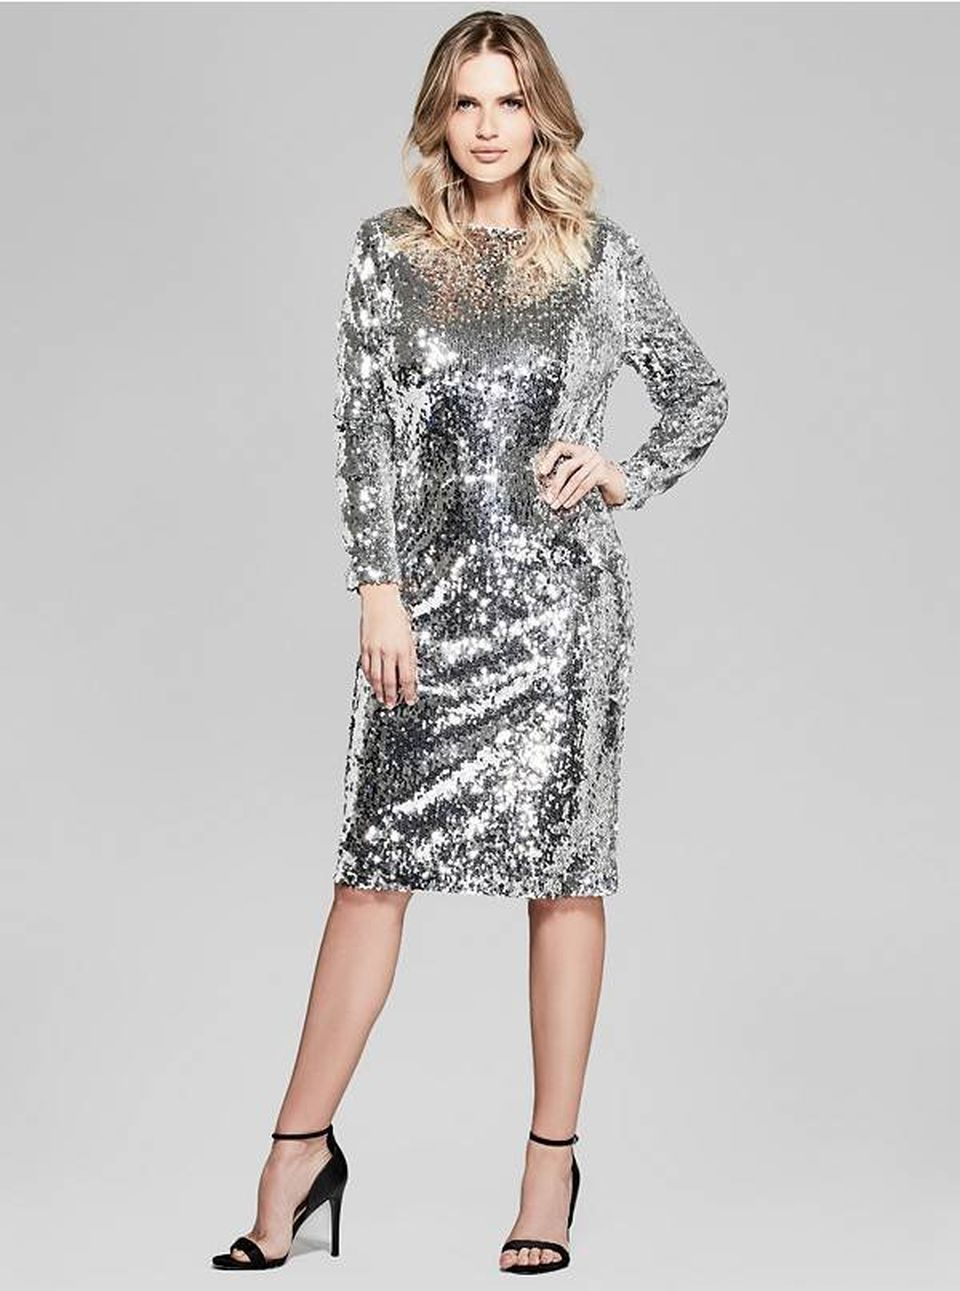 Sequin dress for new year eve party and night out 73